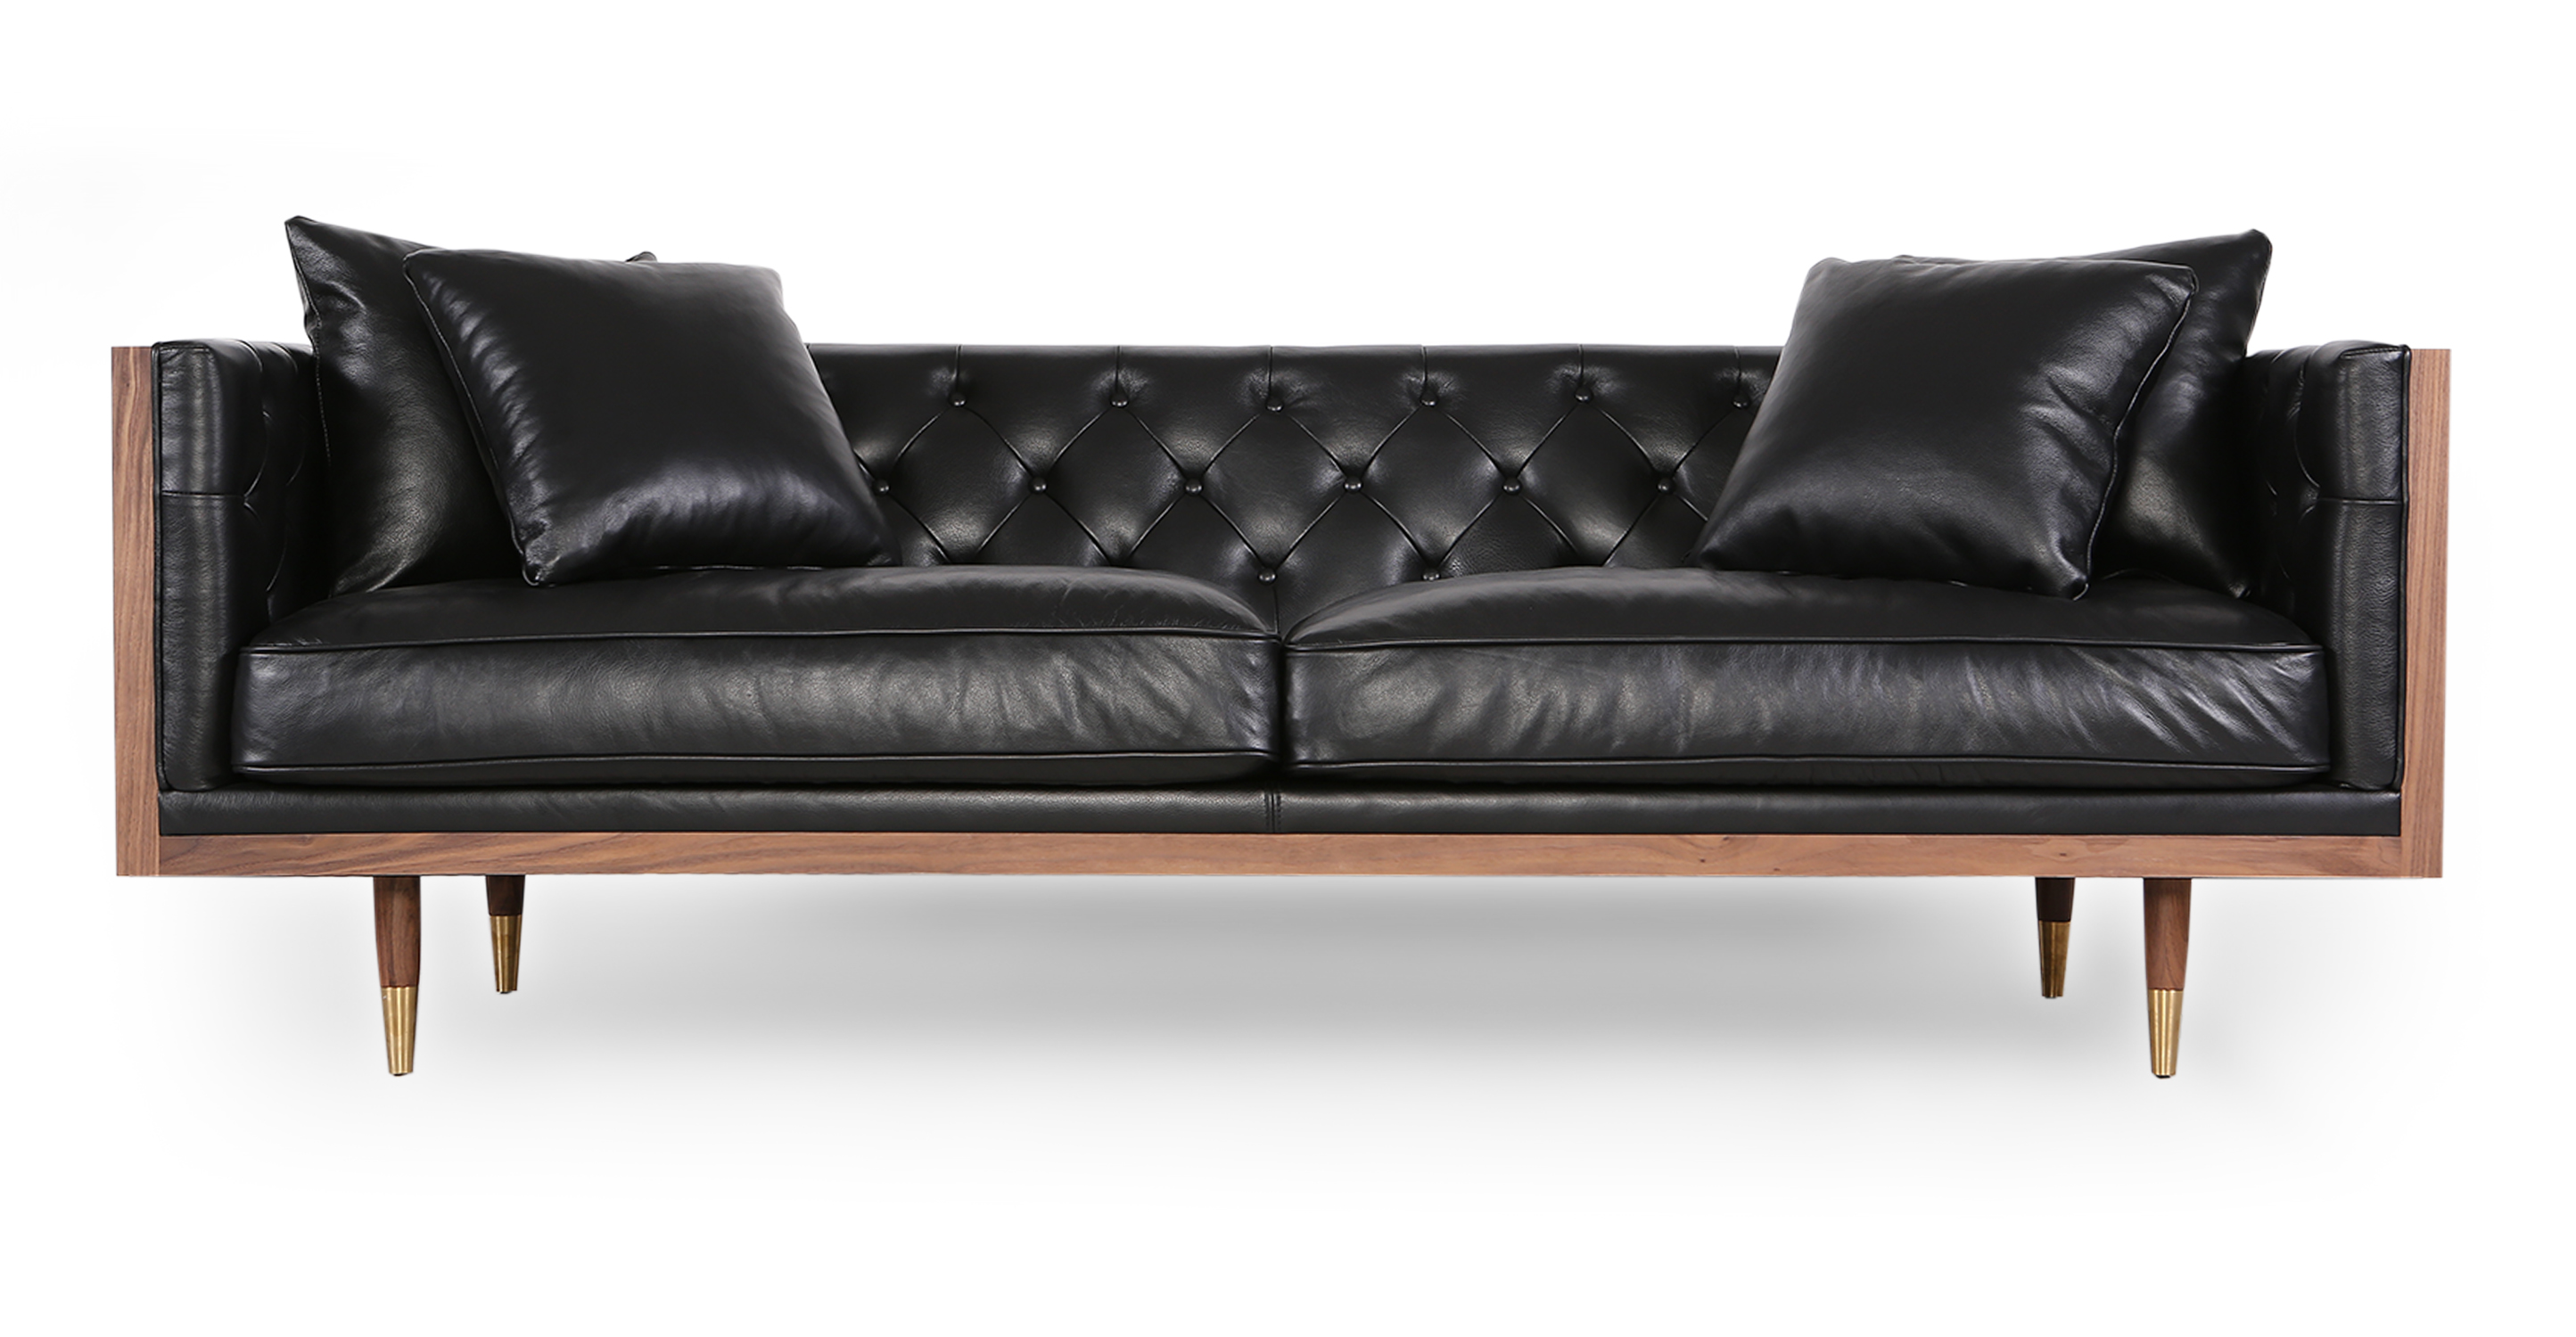 "Woodrow Neo 87"" Leather Sofa, Walnut/Black Aniline"